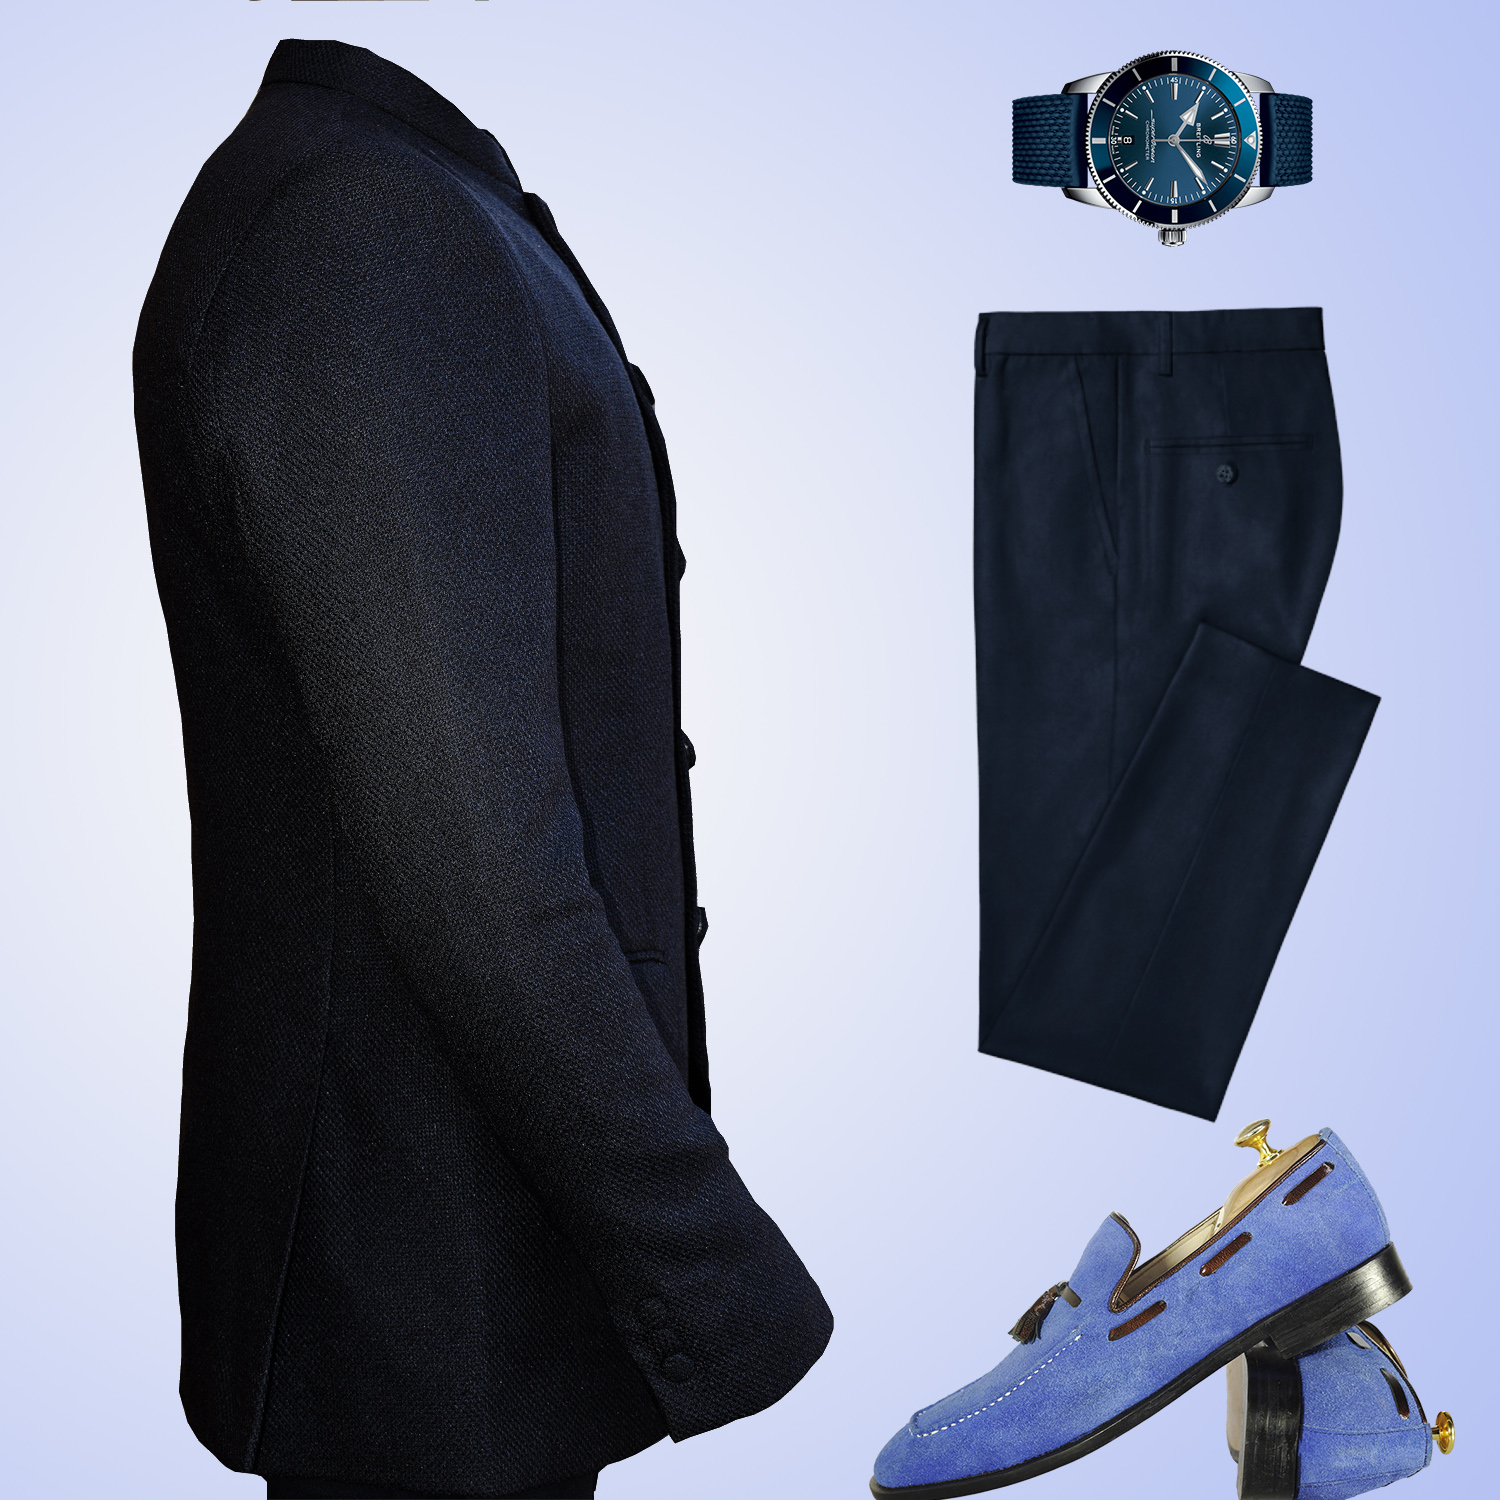 Business casual interview outfit for men in Kenya